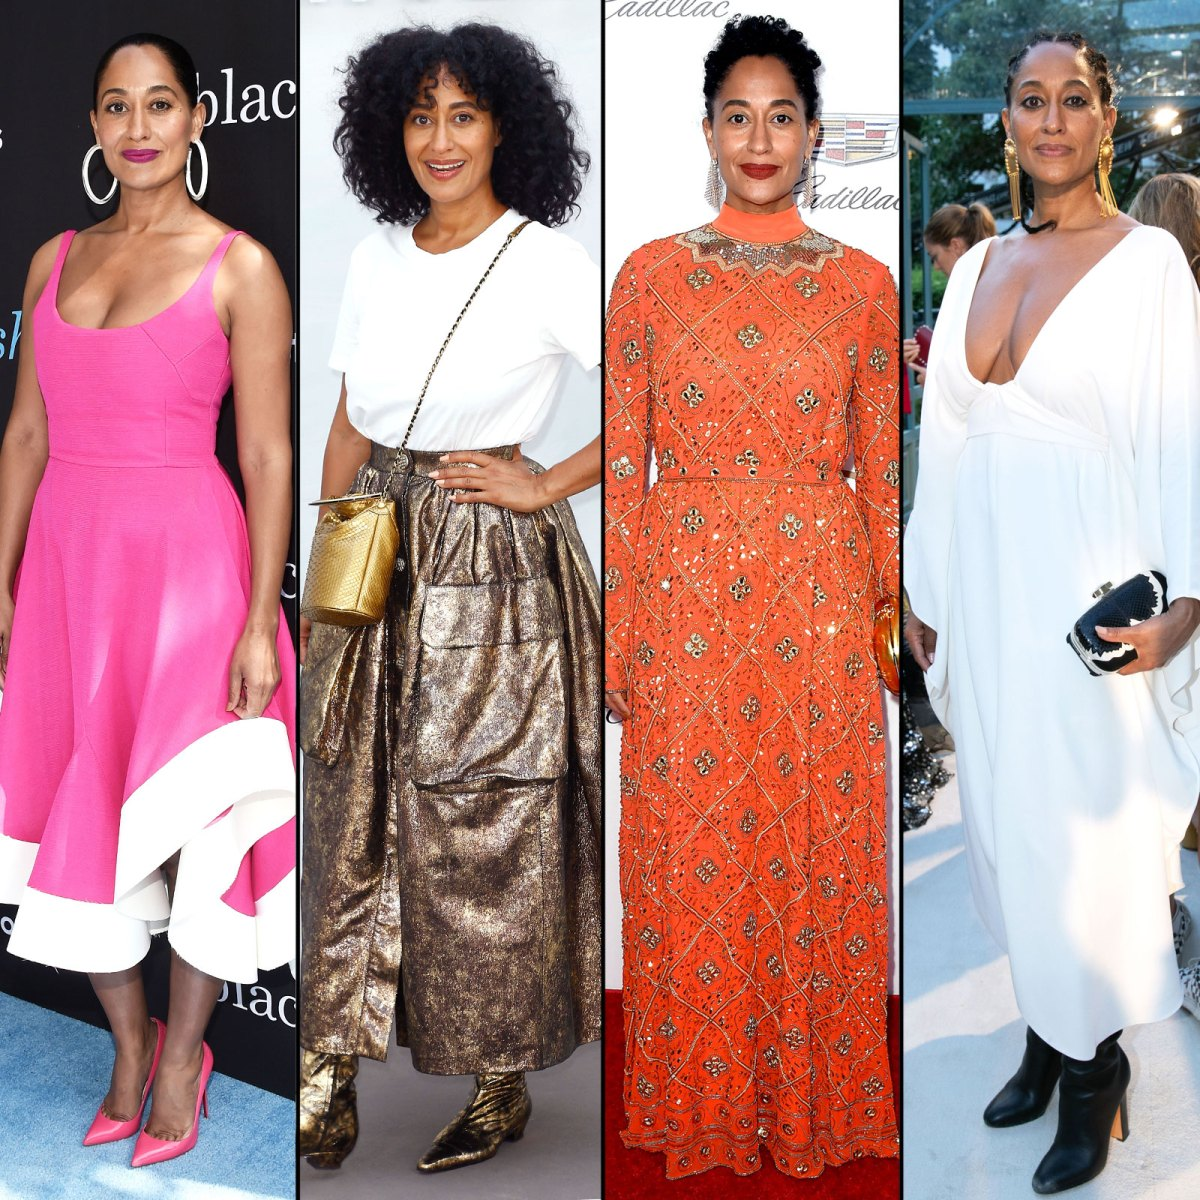 972c66d187a38 Happy Birthday, Tracee Ellis Ross! See Her Best 2018 Red Carpet Looks